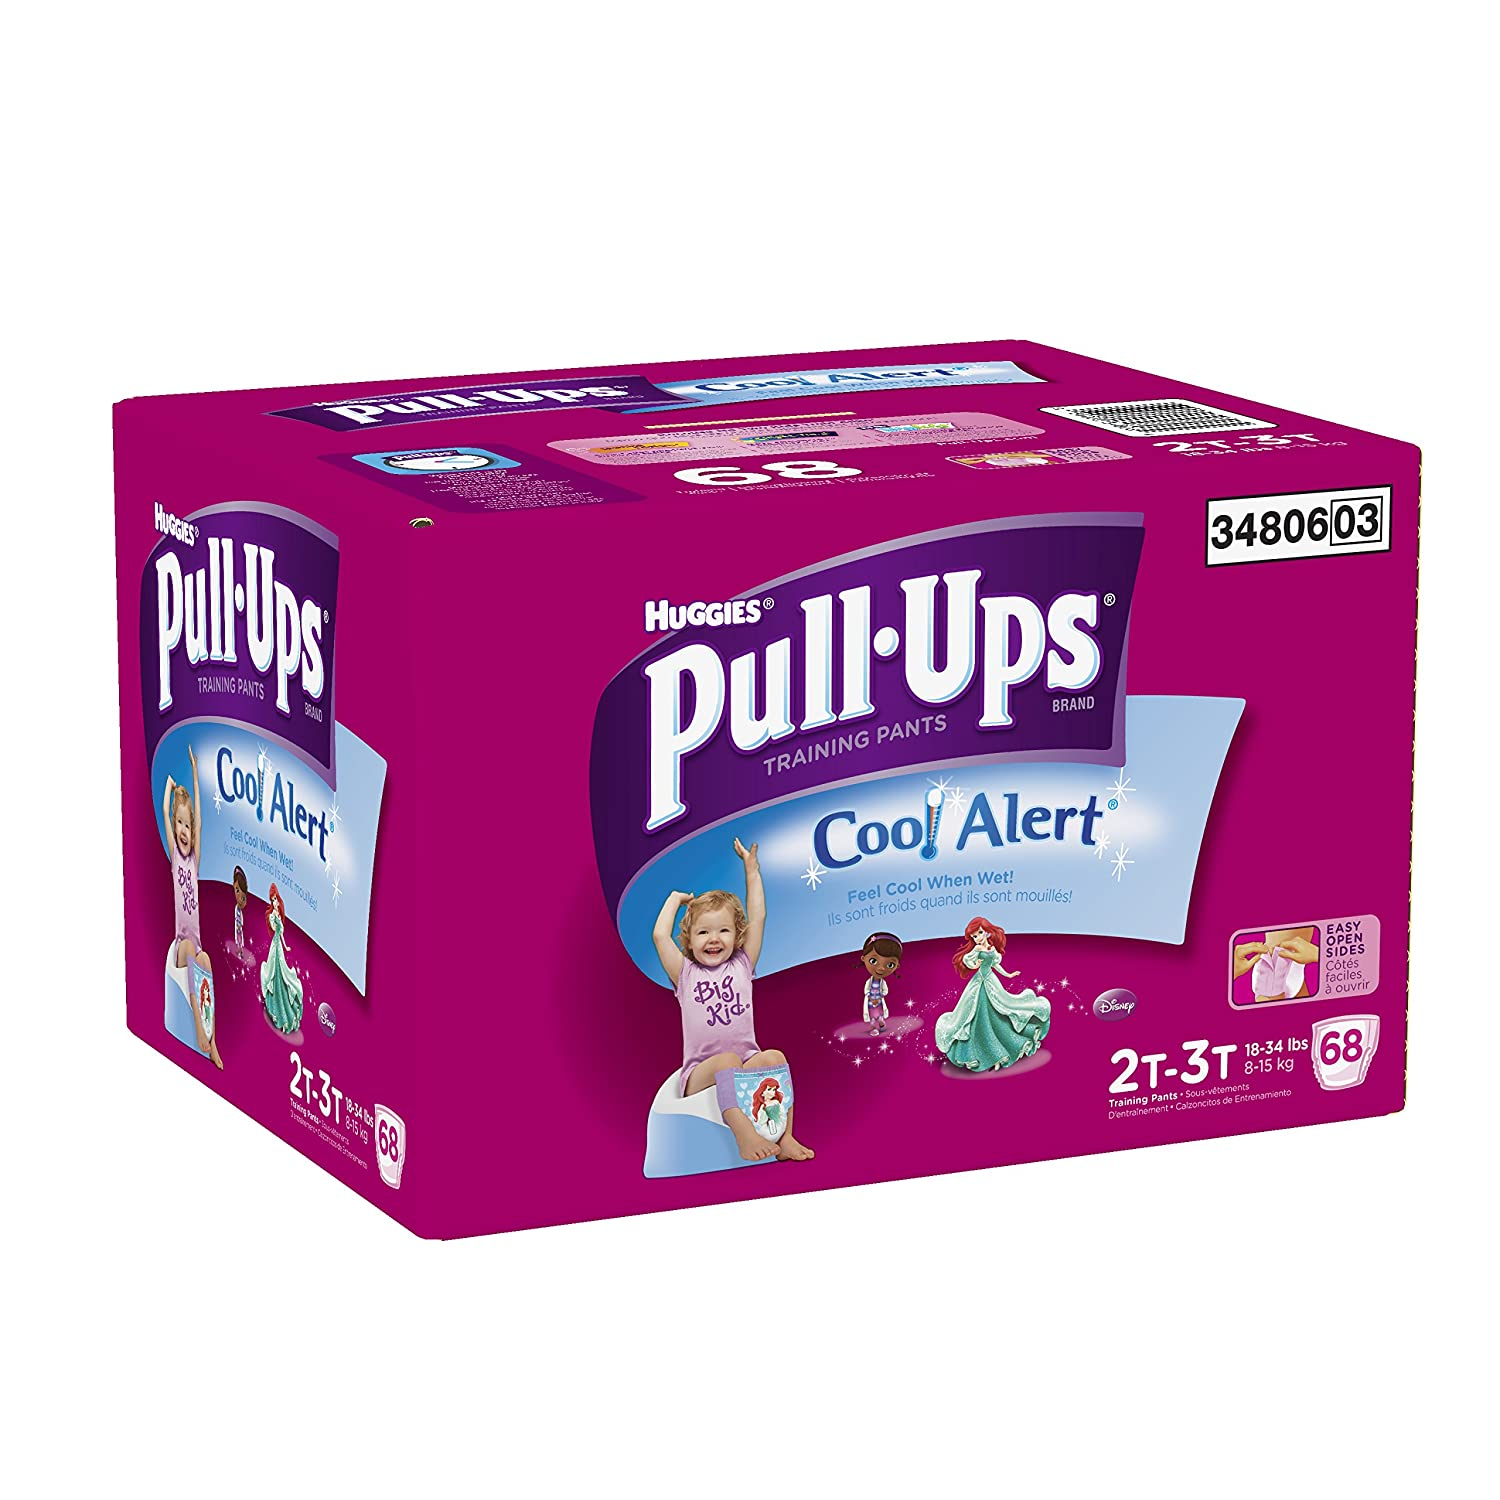 Amazon.com: Pull-Ups Training Pants with Cool Alert for Girls, 68 Count: Health & Personal Care